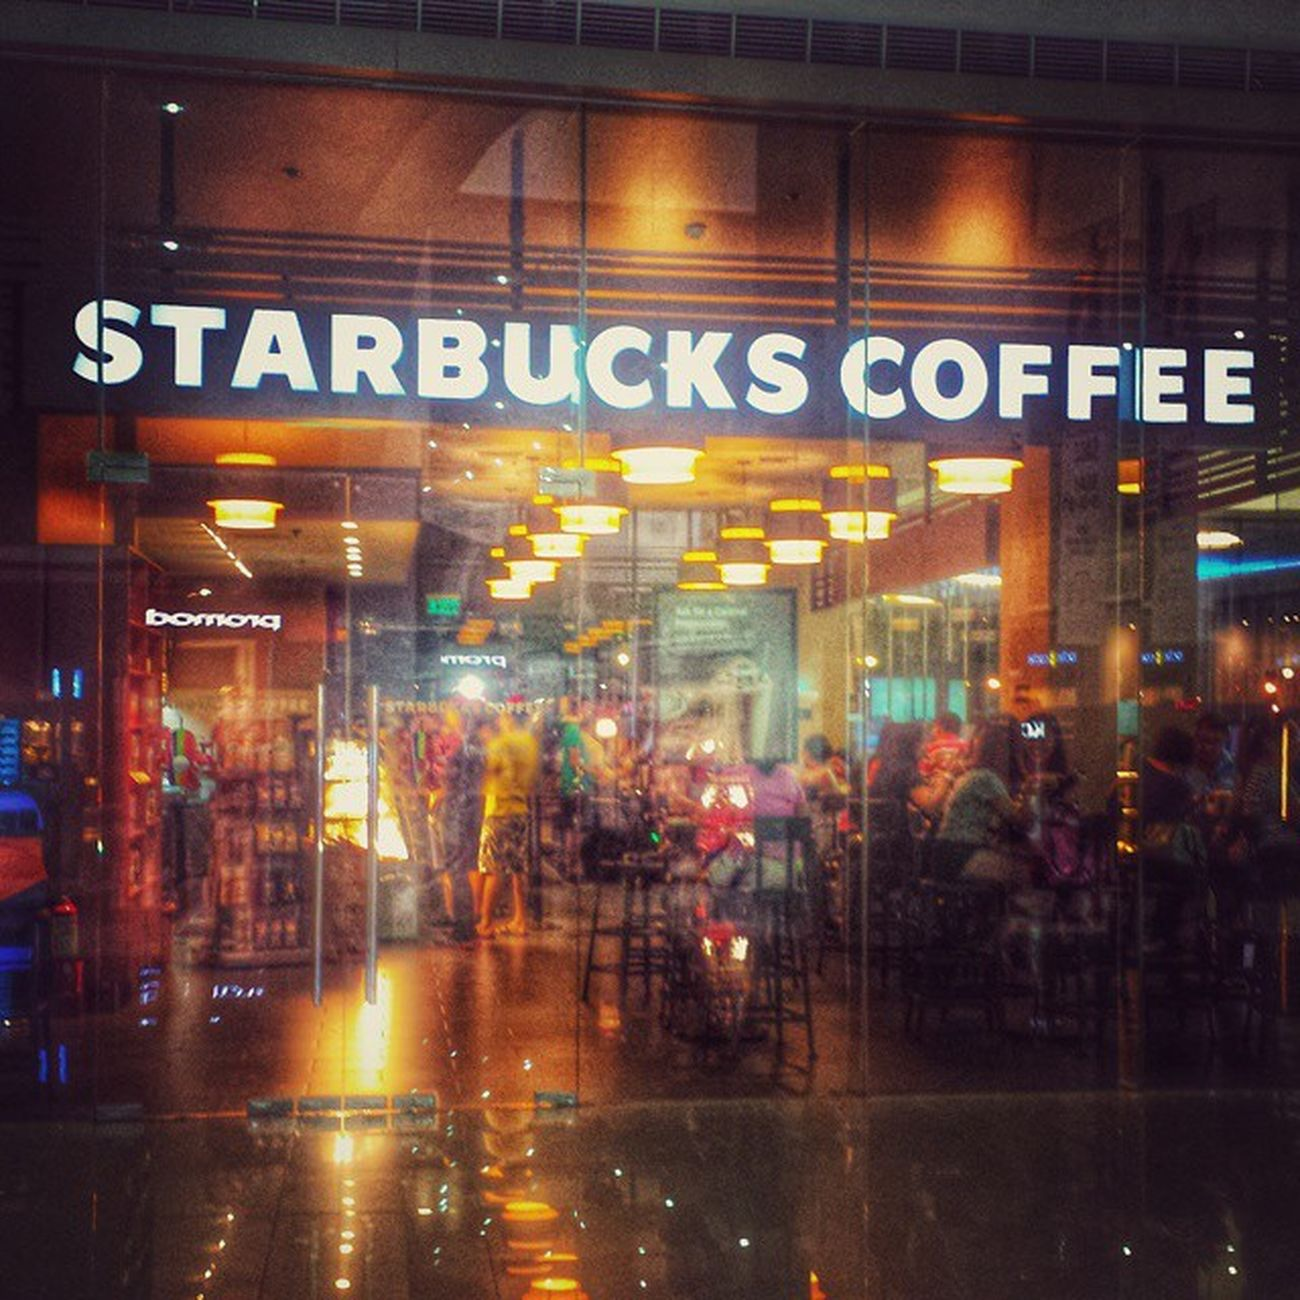 Starbucks Coffee Coffeeshop Laspinas South